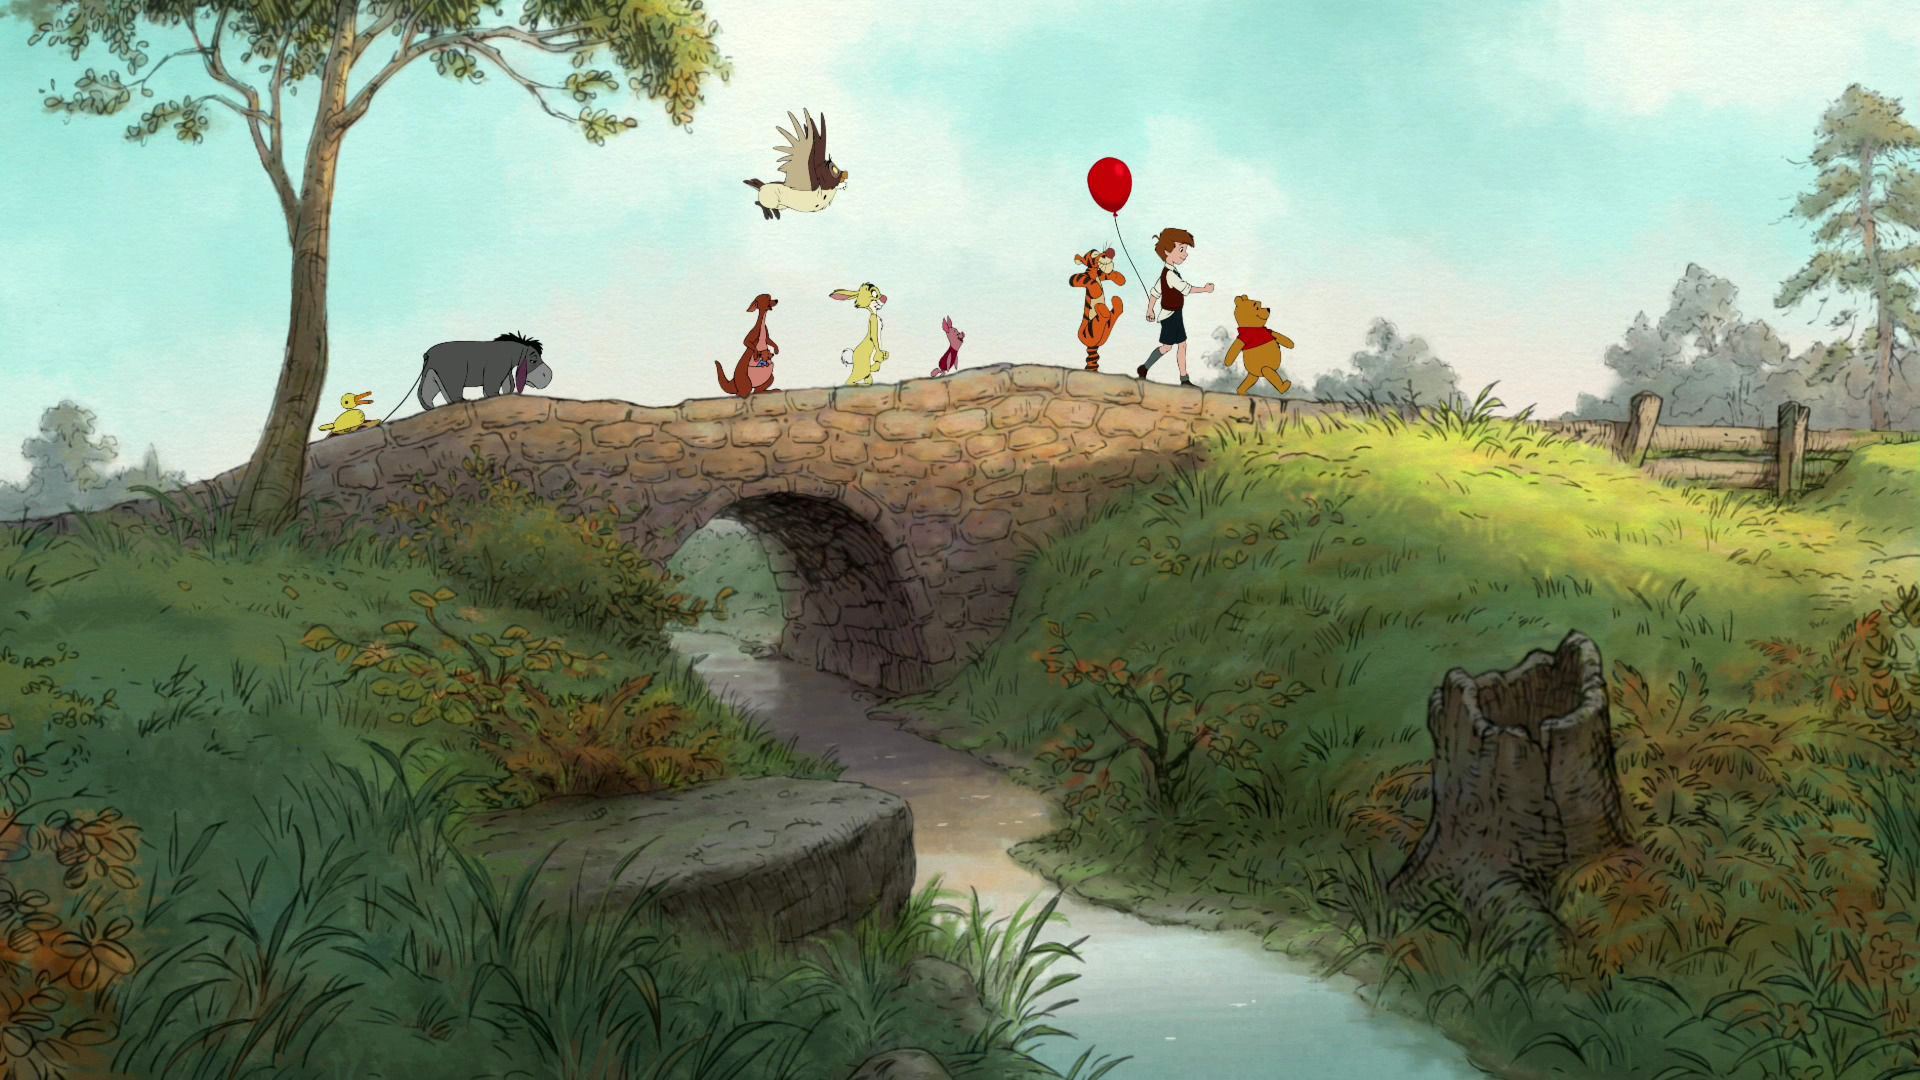 Winnie The Pooh Free Desktop Wallpapers For Hd Widescreen And Mobile Winnie The Pooh Background Cool Cartoons Best Cartoons Ever